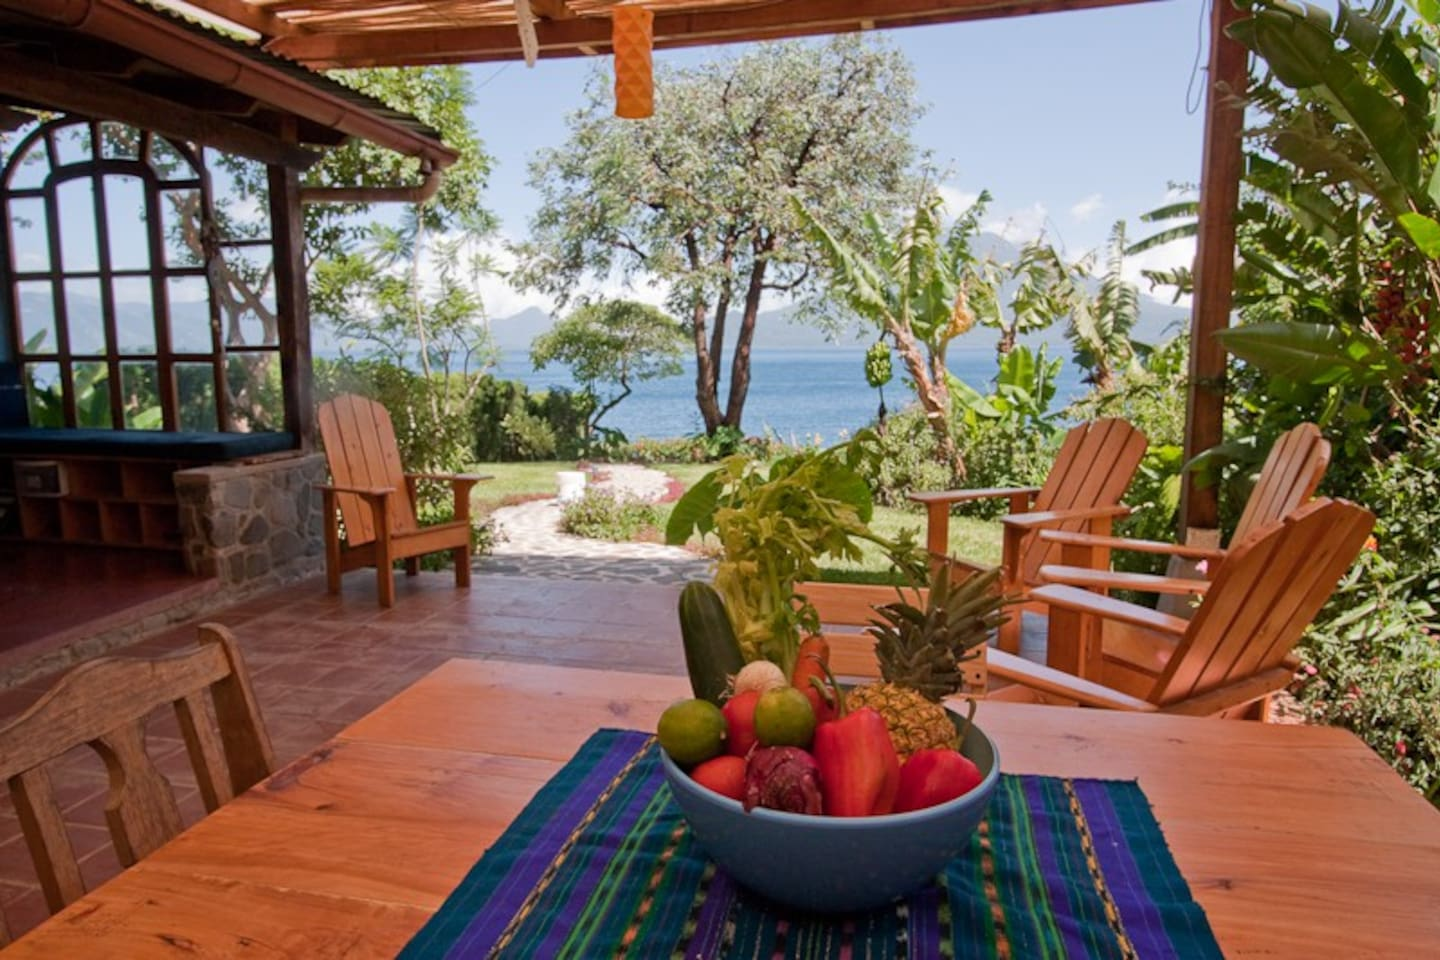 Covered patio has best views of Lake Atitlan, and is where you will spend most of your time.